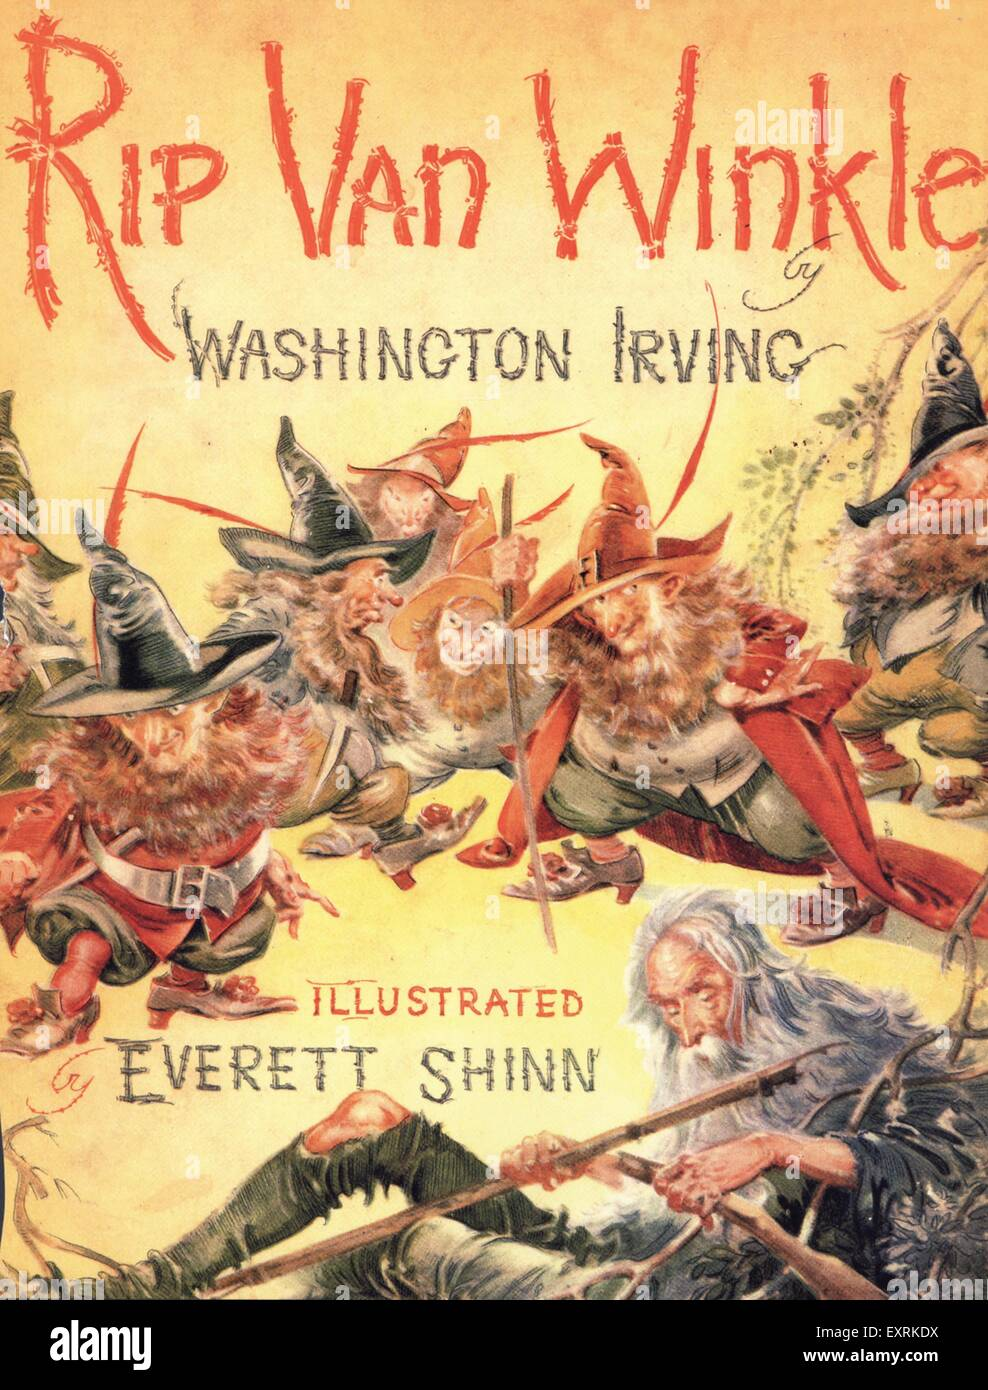 Compare and contrast Irving's Rip Van Winkle – Washington Irving's Diction Essay Sample